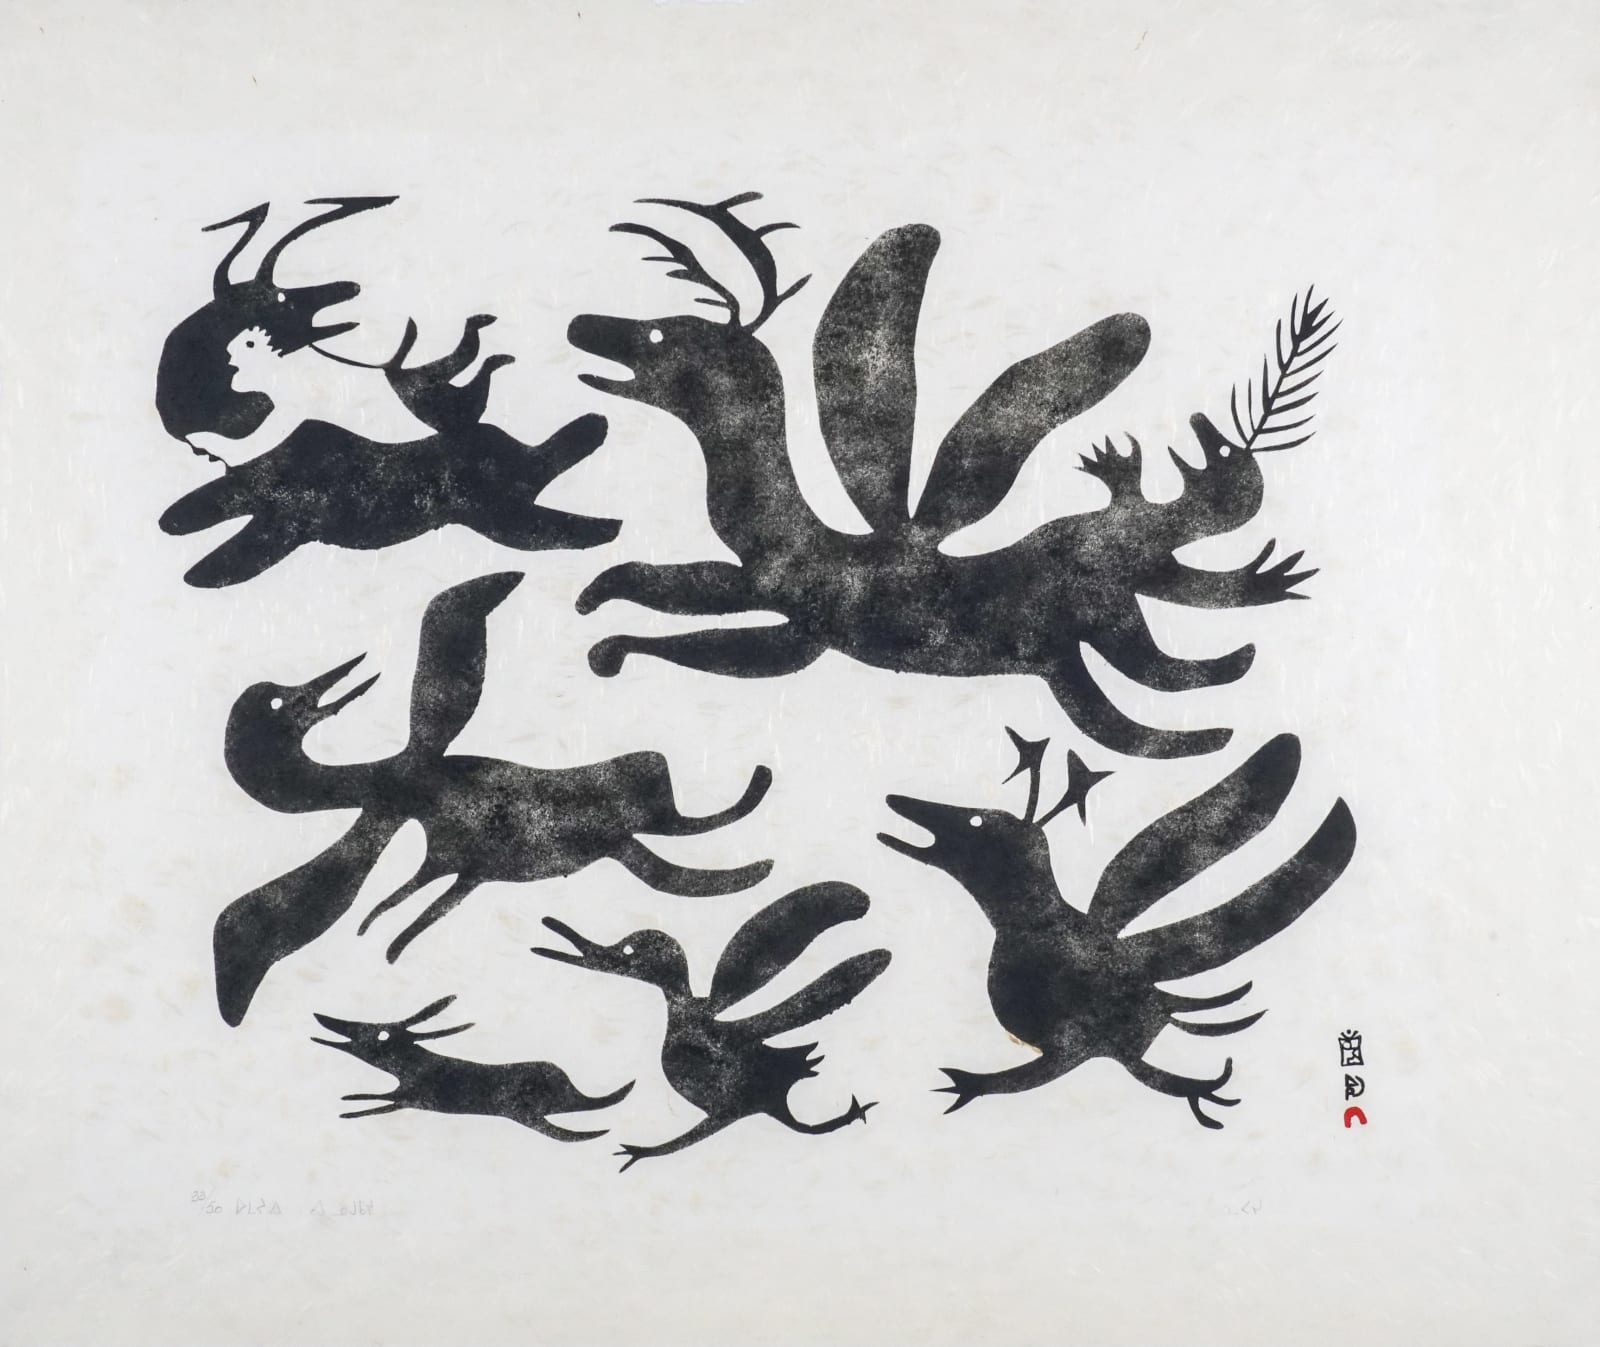 LOT 14 PITSEOLAK ASHOONA, R.C.A., O.C., (1904-1983) KINNGAIT (CAPE DORSET) Man with Beasts, 1963 stonecut, 23 1/2 x 28 in (59.7 x 71.1 cm) ESTIMATE: $1,200 — $1,800 PRICE REALIZED: $1,320